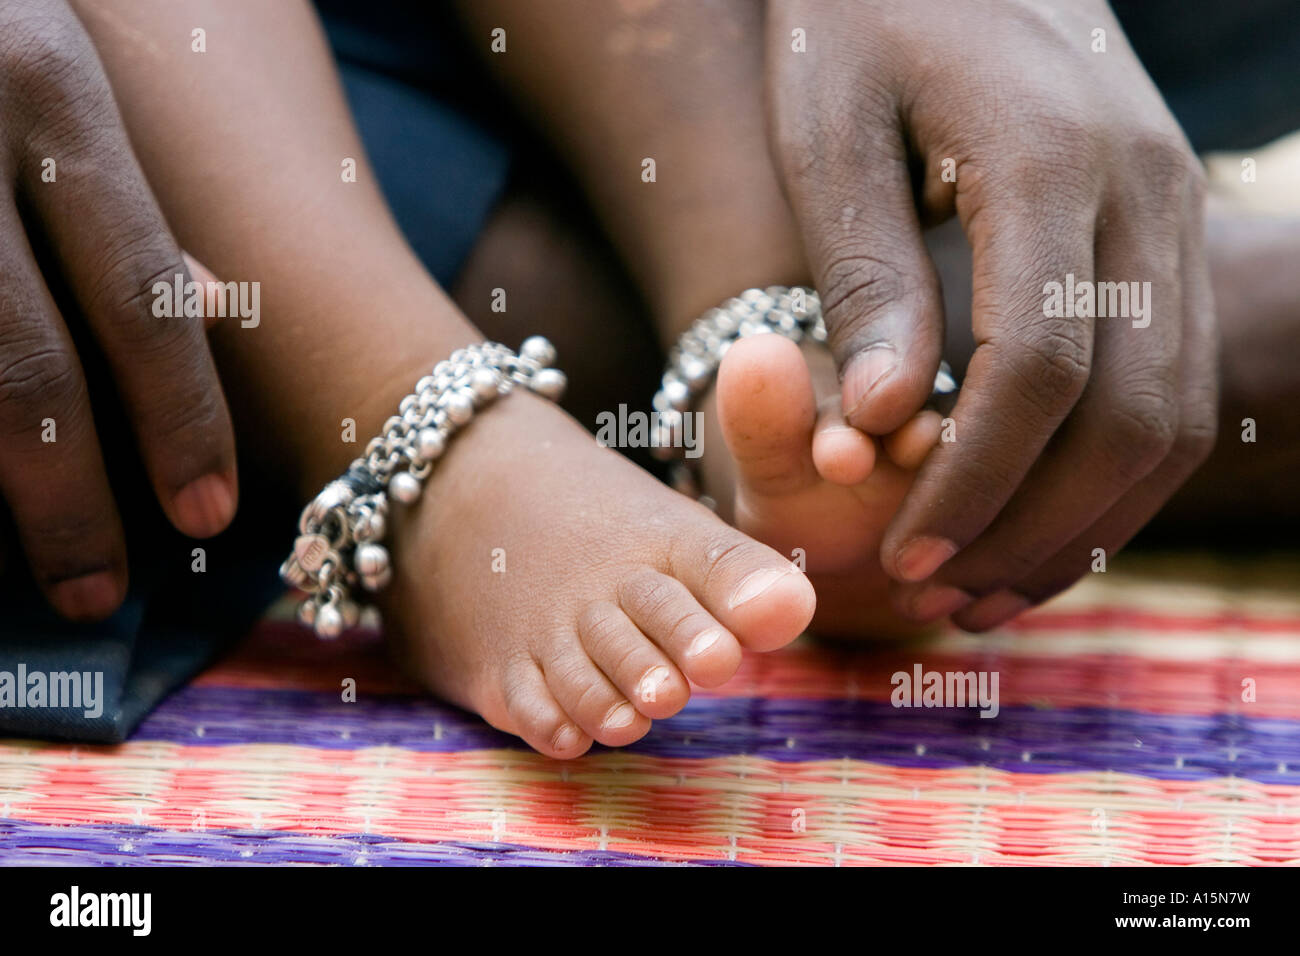 is ankle custom ones it time bracelet subsequent children when toddler their kids alukkas them to jos first visit and or for jewellery you ceremony blog the little choosing gift anklet naming